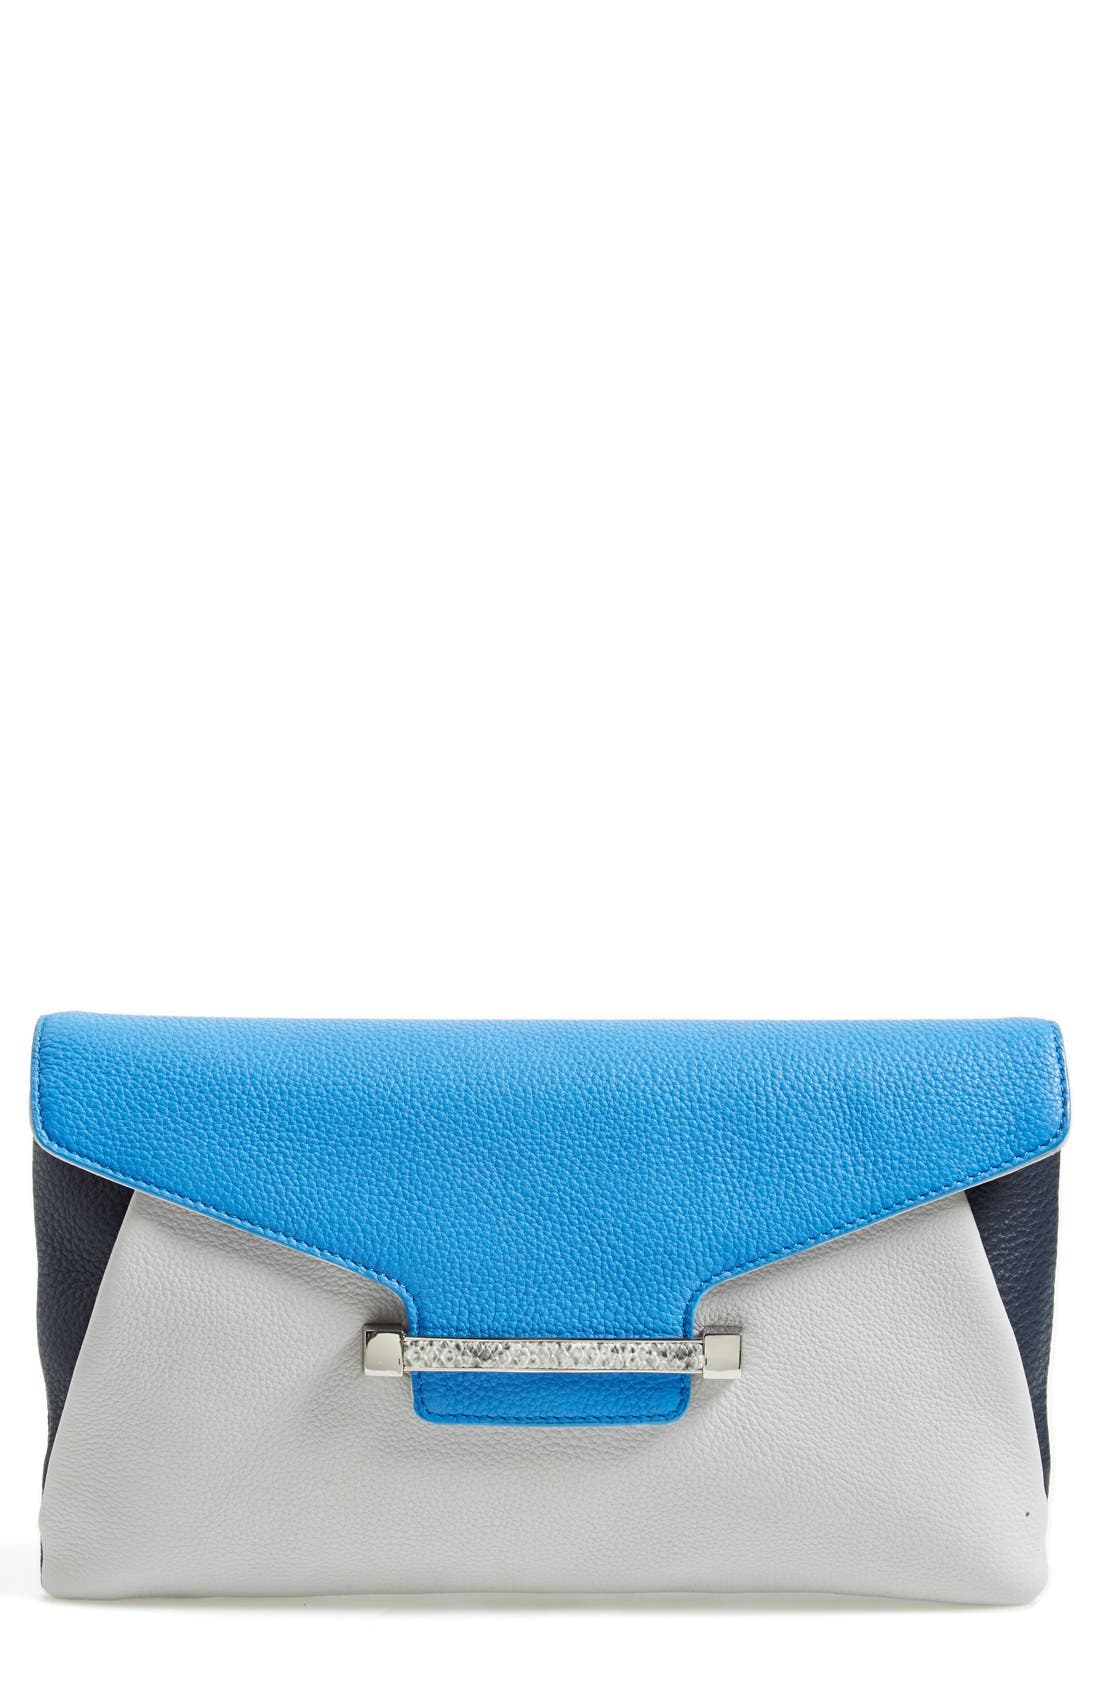 Main Image - Vince Camuto 'Julia' Leather Clutch